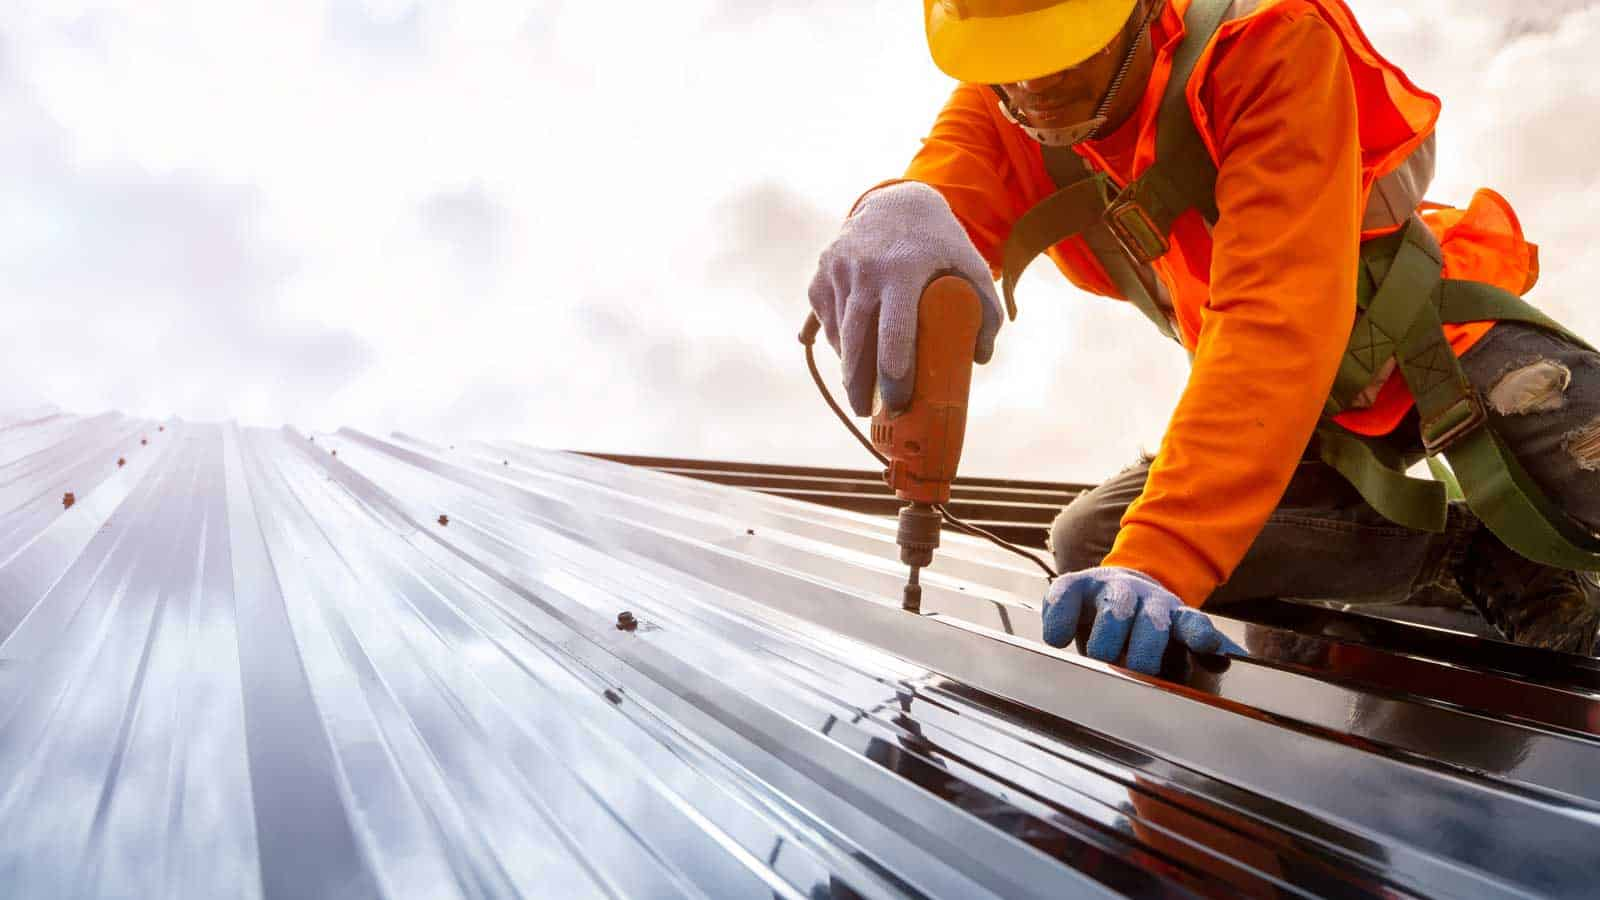 A roof is a big investment. Make sure you ask the right questions to find the best roofing contractor near you.